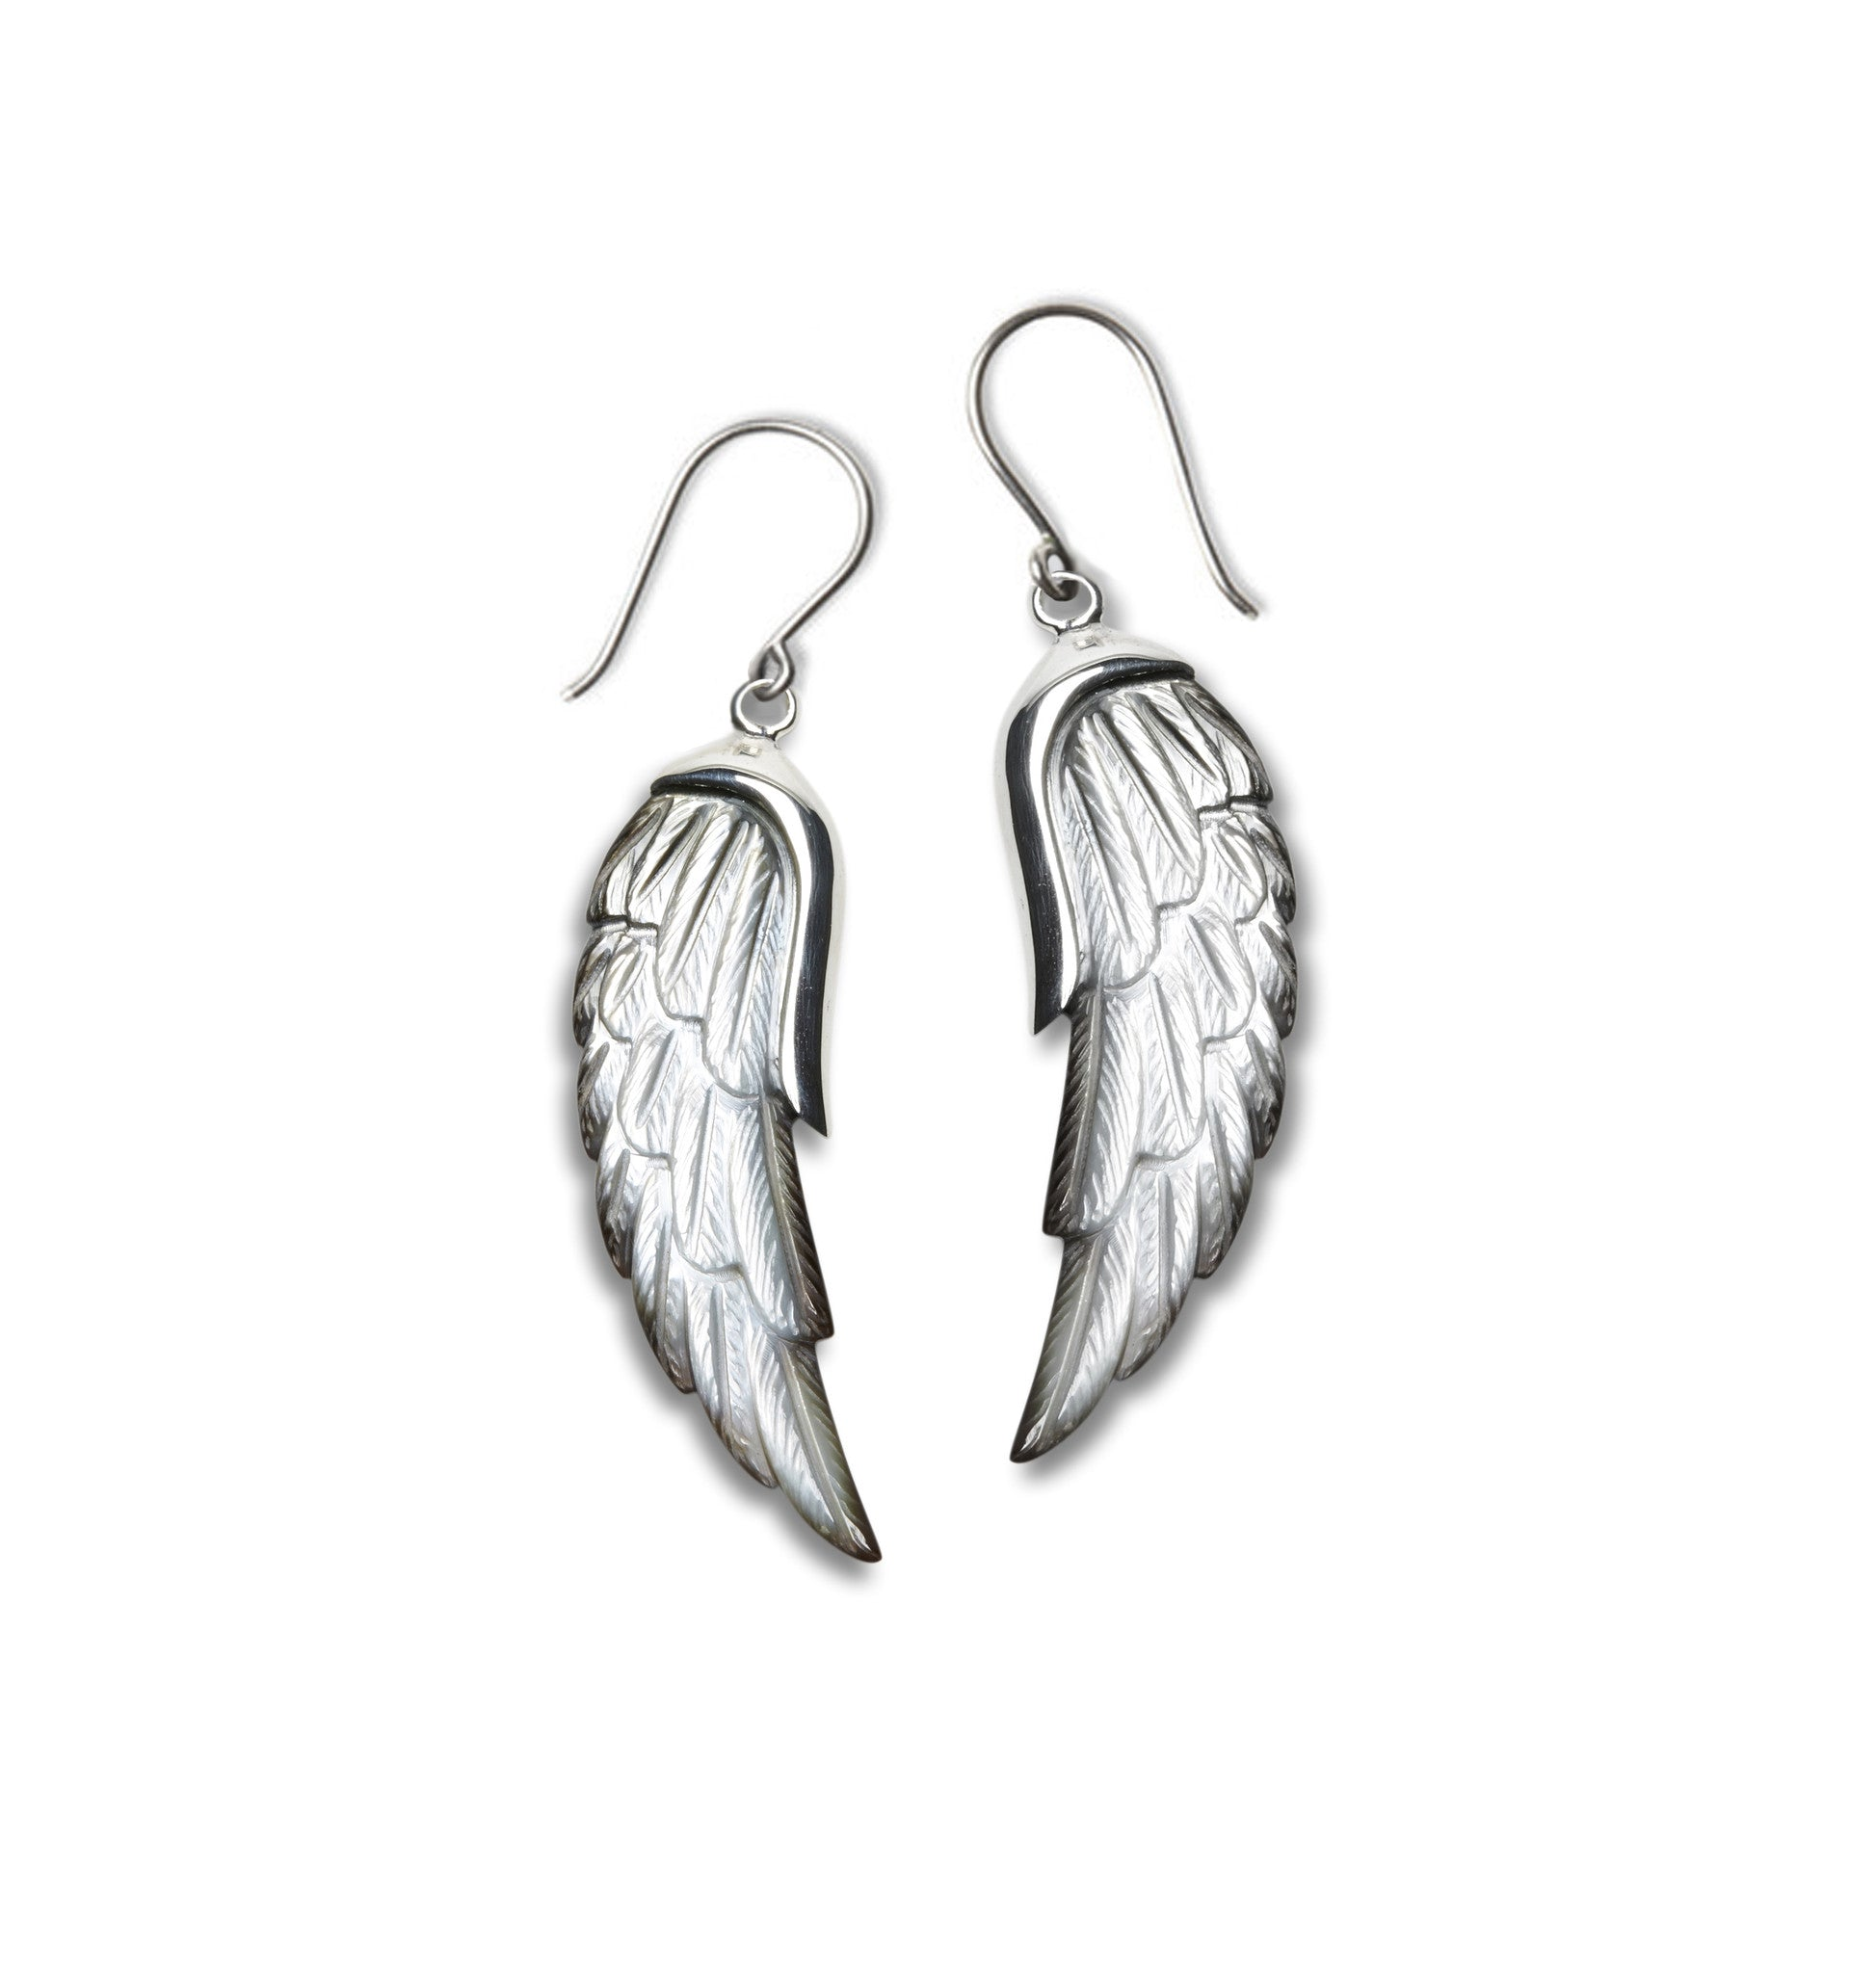 Mother Of Pearl Left Angel Wing Decor: Angel Wing Earrings Carved From Mother Of Pearl